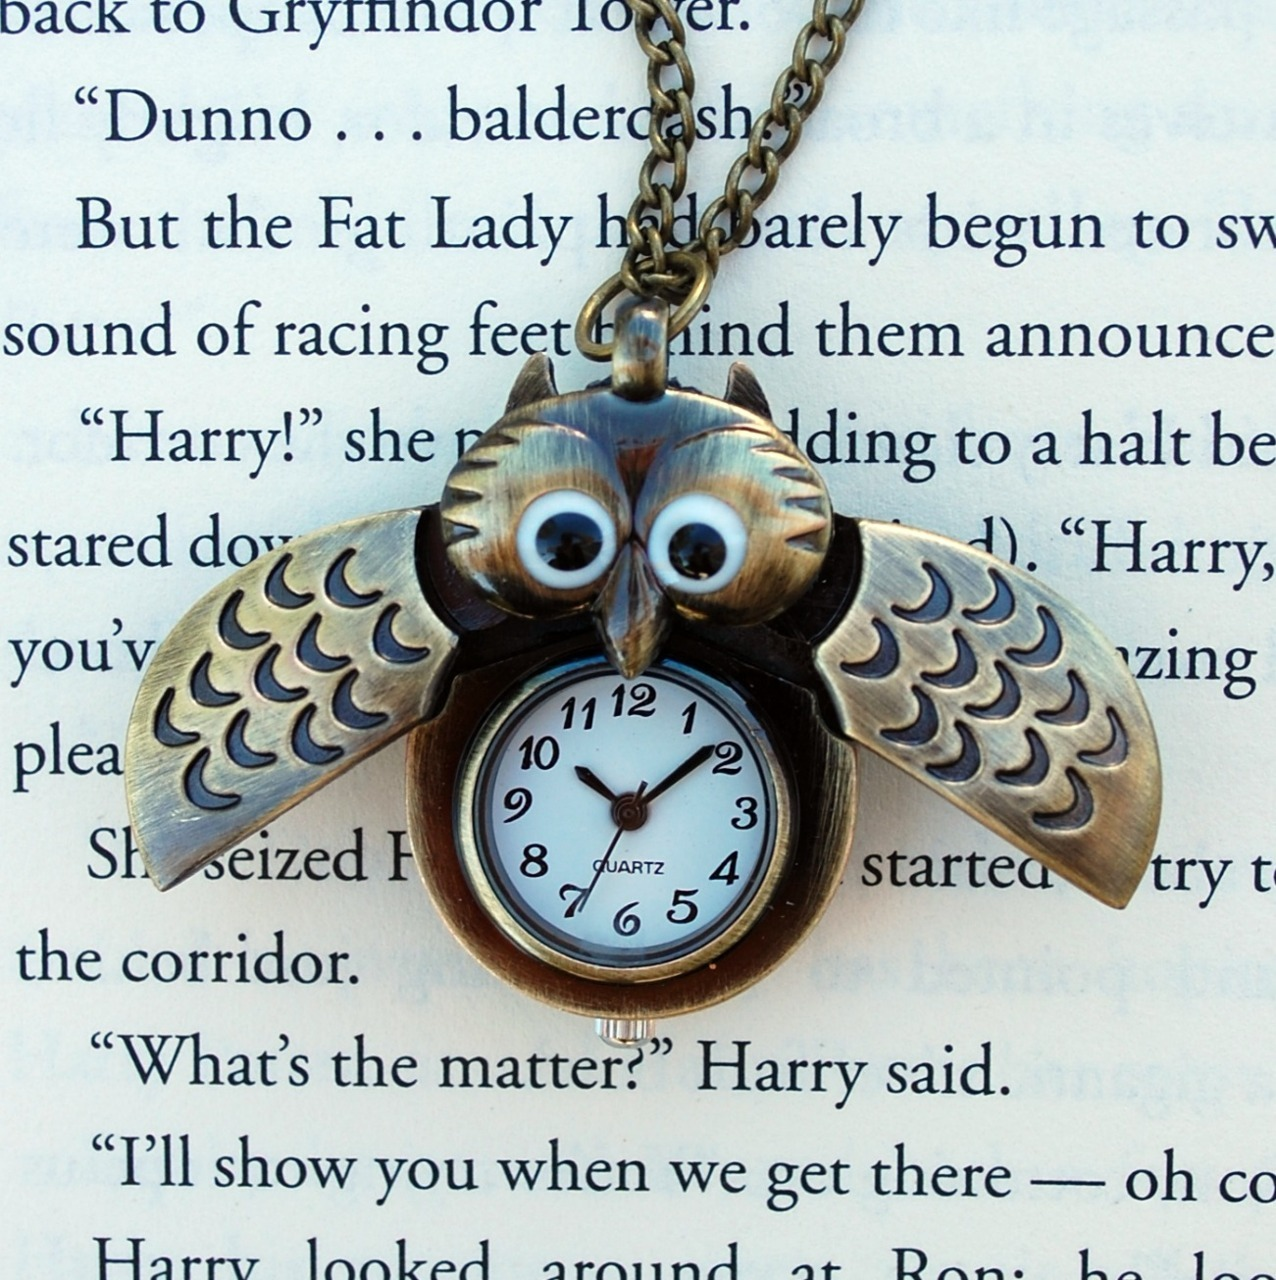 the-absolute-funniest-posts:  The Winged Owl Watch Necklace is back in-stock at the Wicked Clothes shop! Order now and use coupon code '1000NOTES' to get 10% off your order! Hurry and order now!